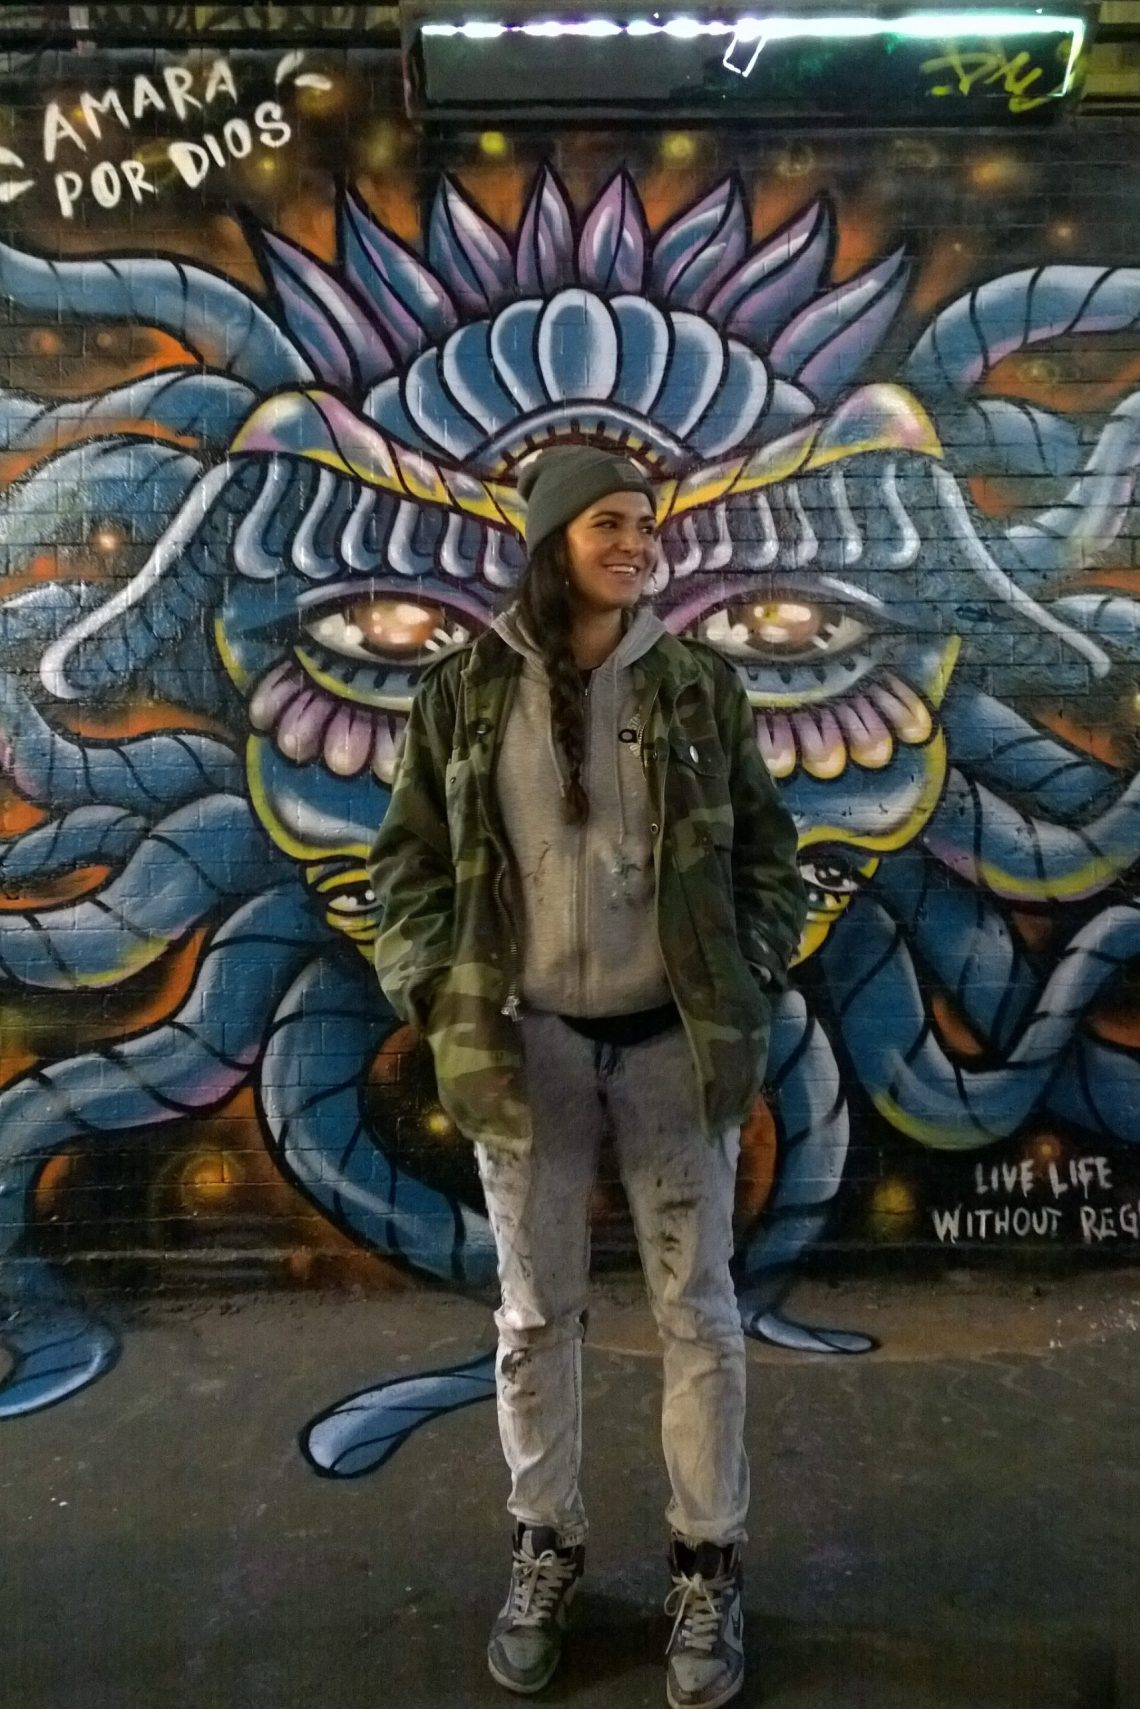 Amara Por Dios next to her tribute piece in the tunnel